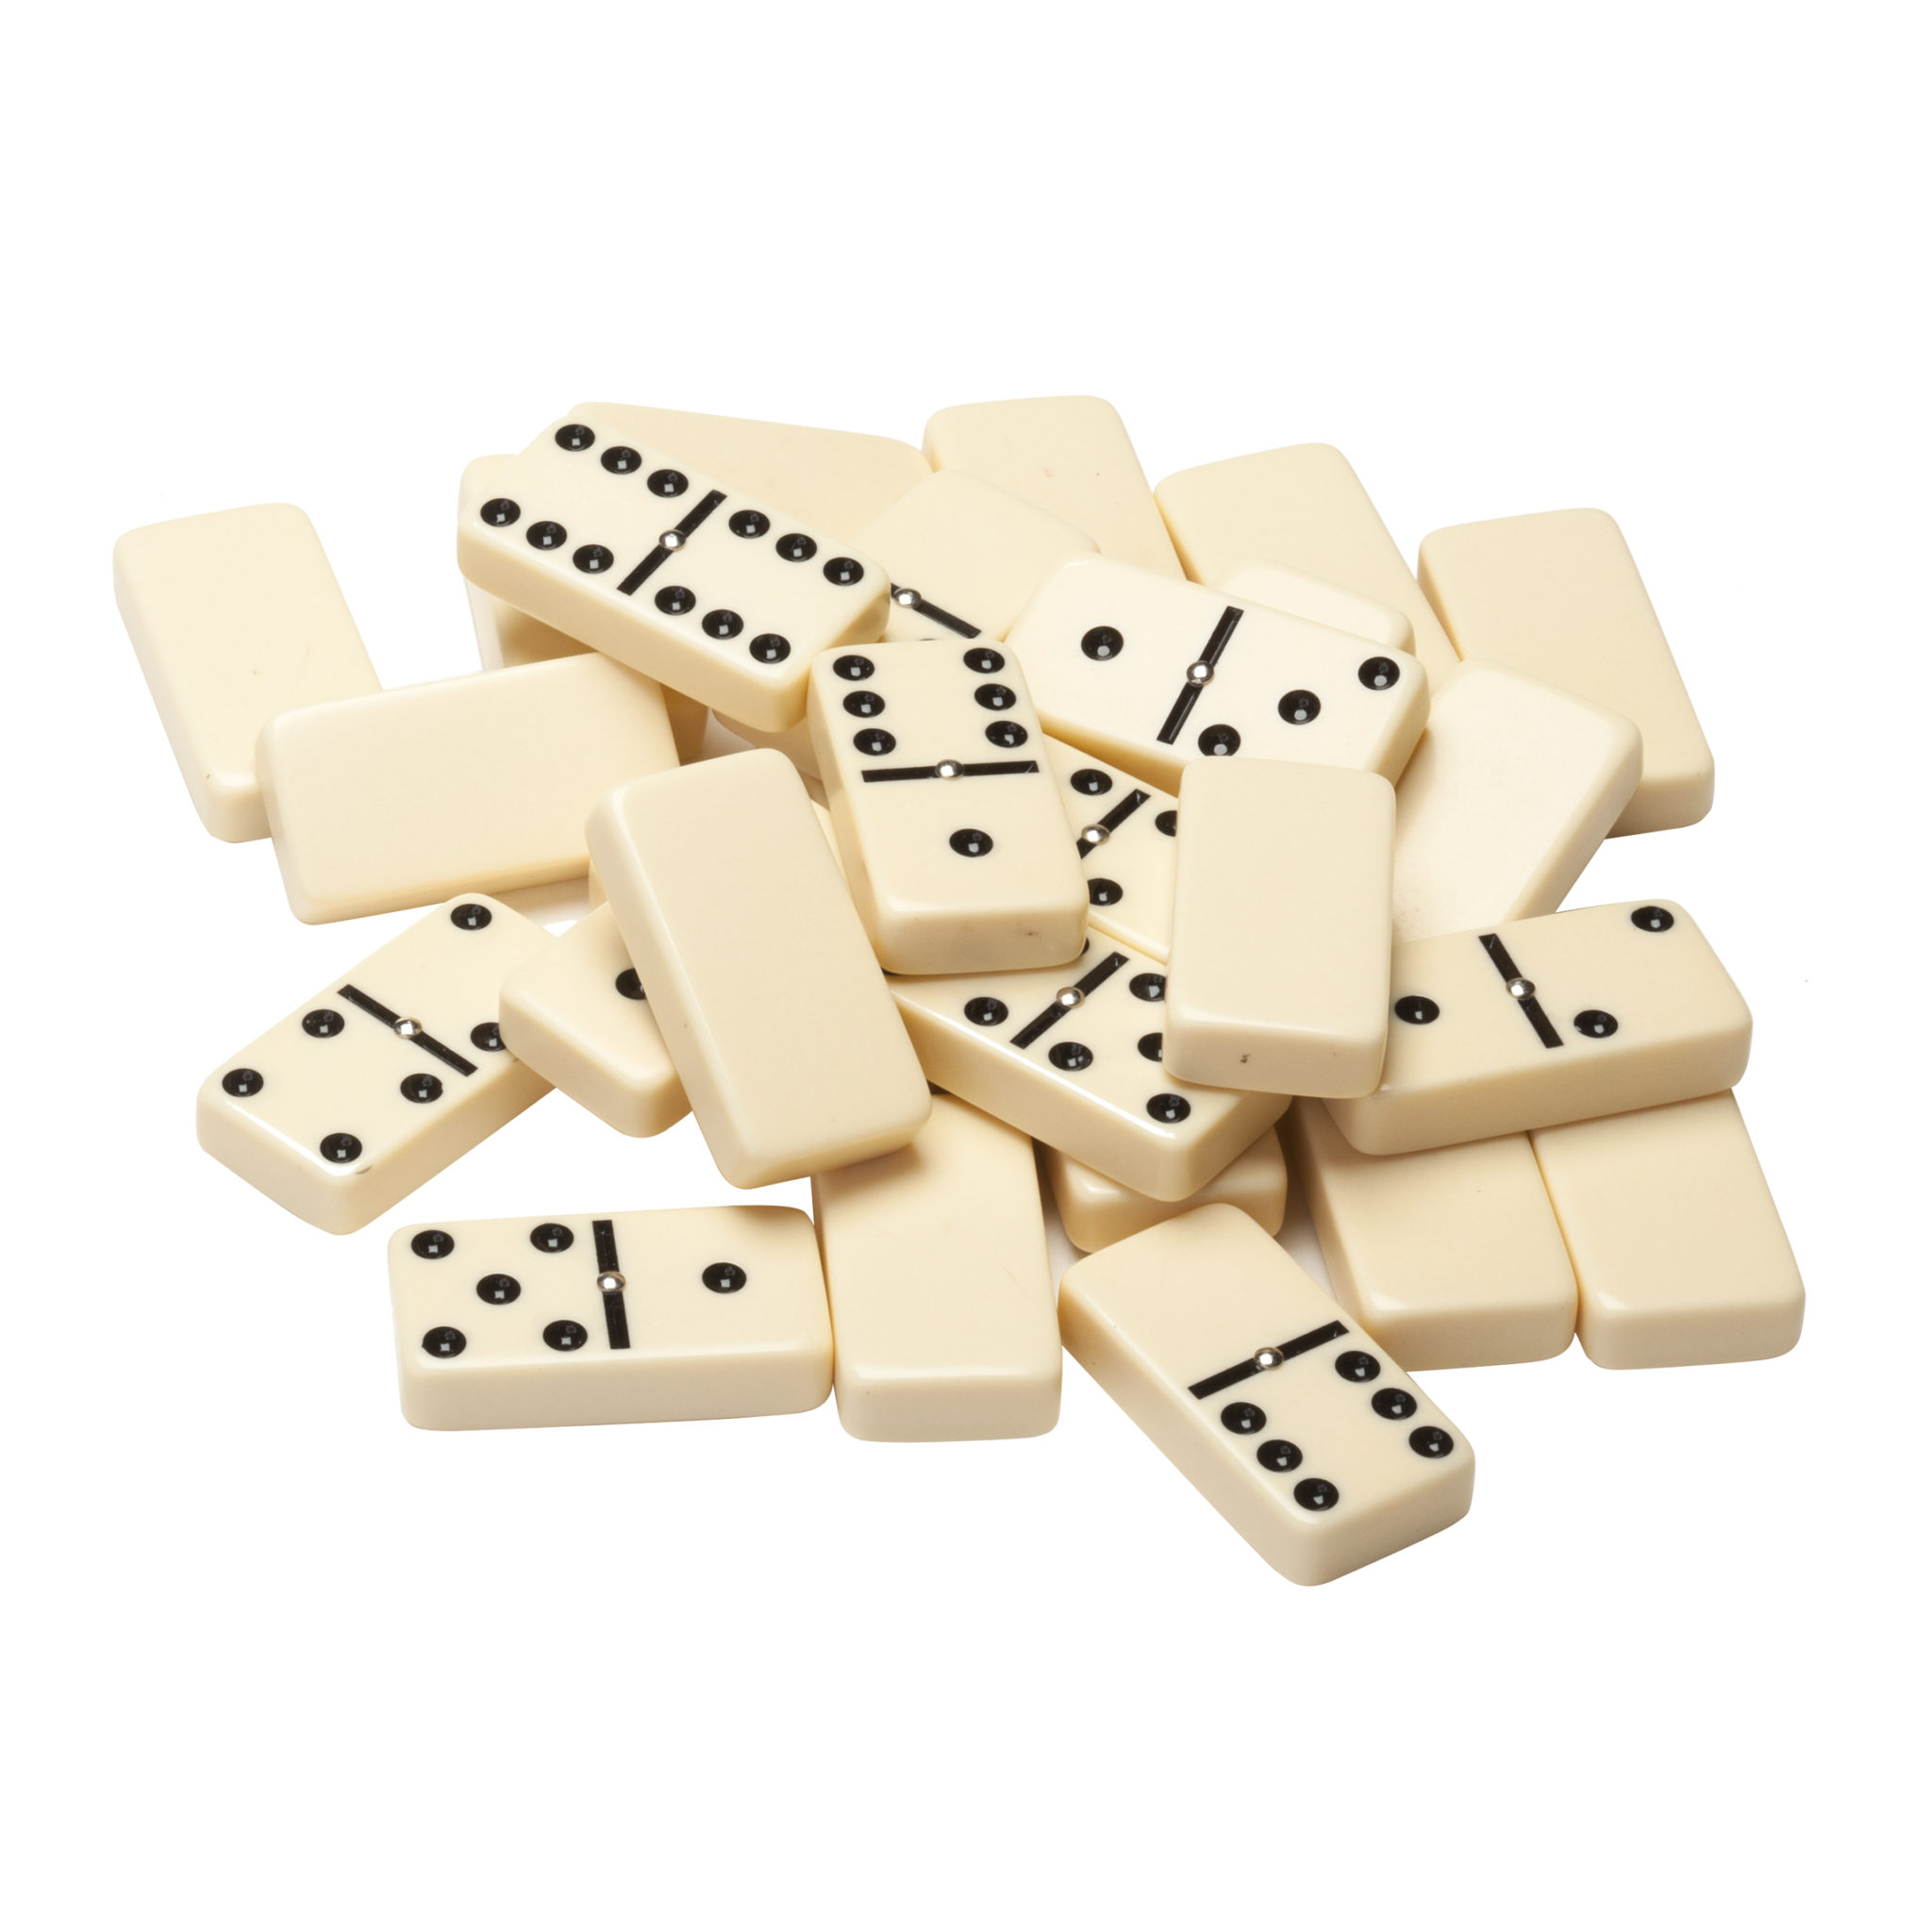 double six dominoes with spinners ivory tiles club size wood expressions. Black Bedroom Furniture Sets. Home Design Ideas